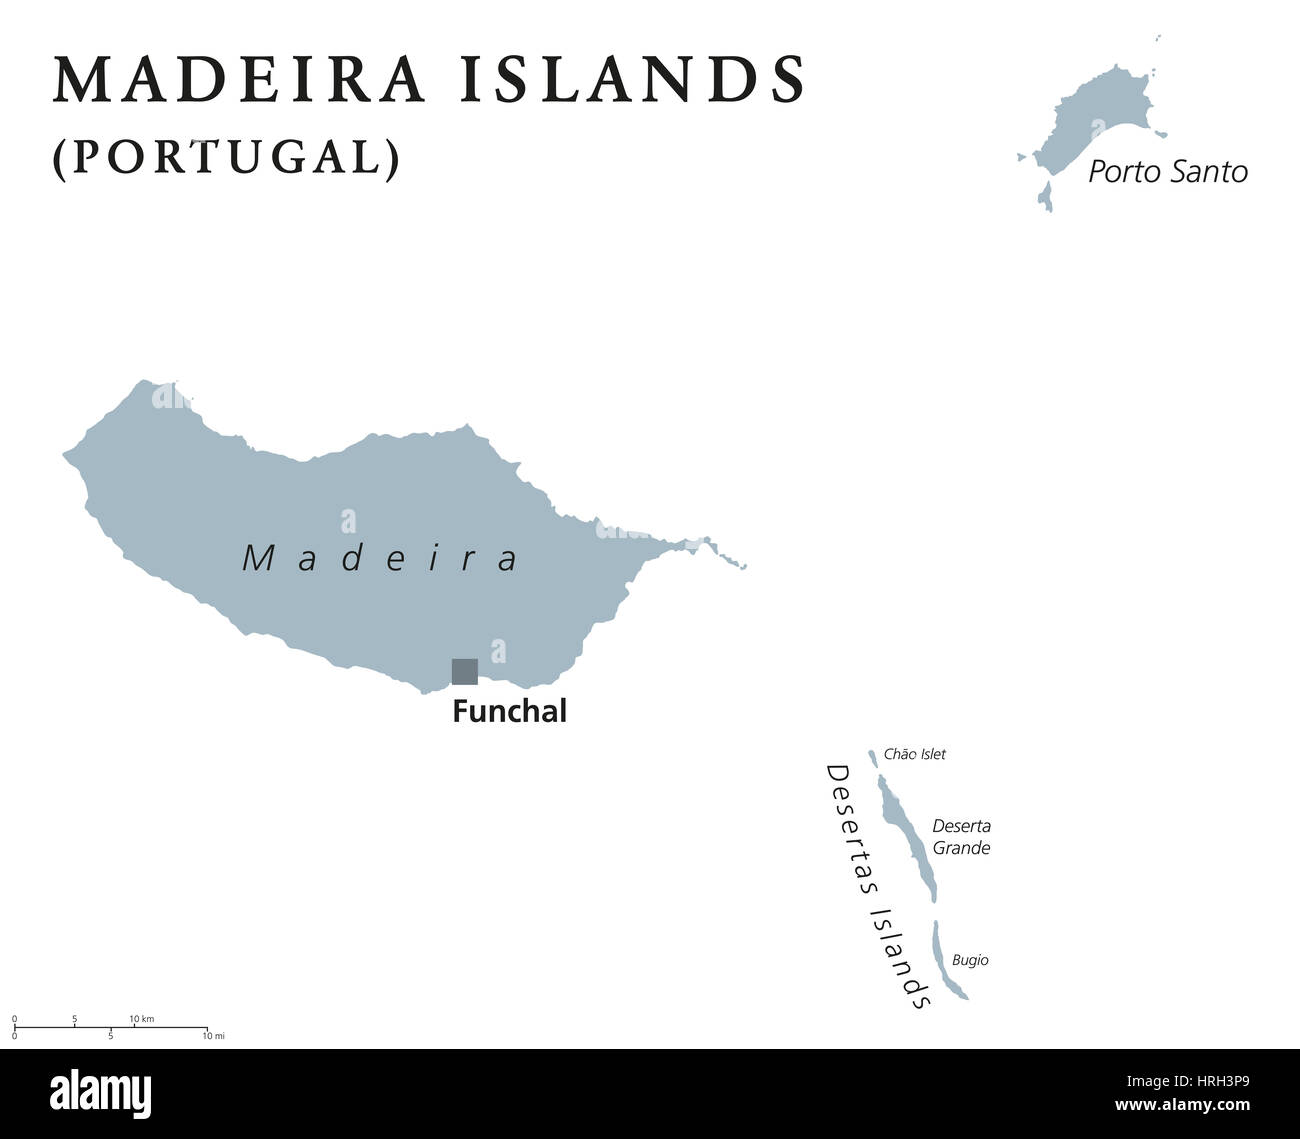 Madeira Islands Political Map With Capital Funchal Portuguese - Portugal map islands